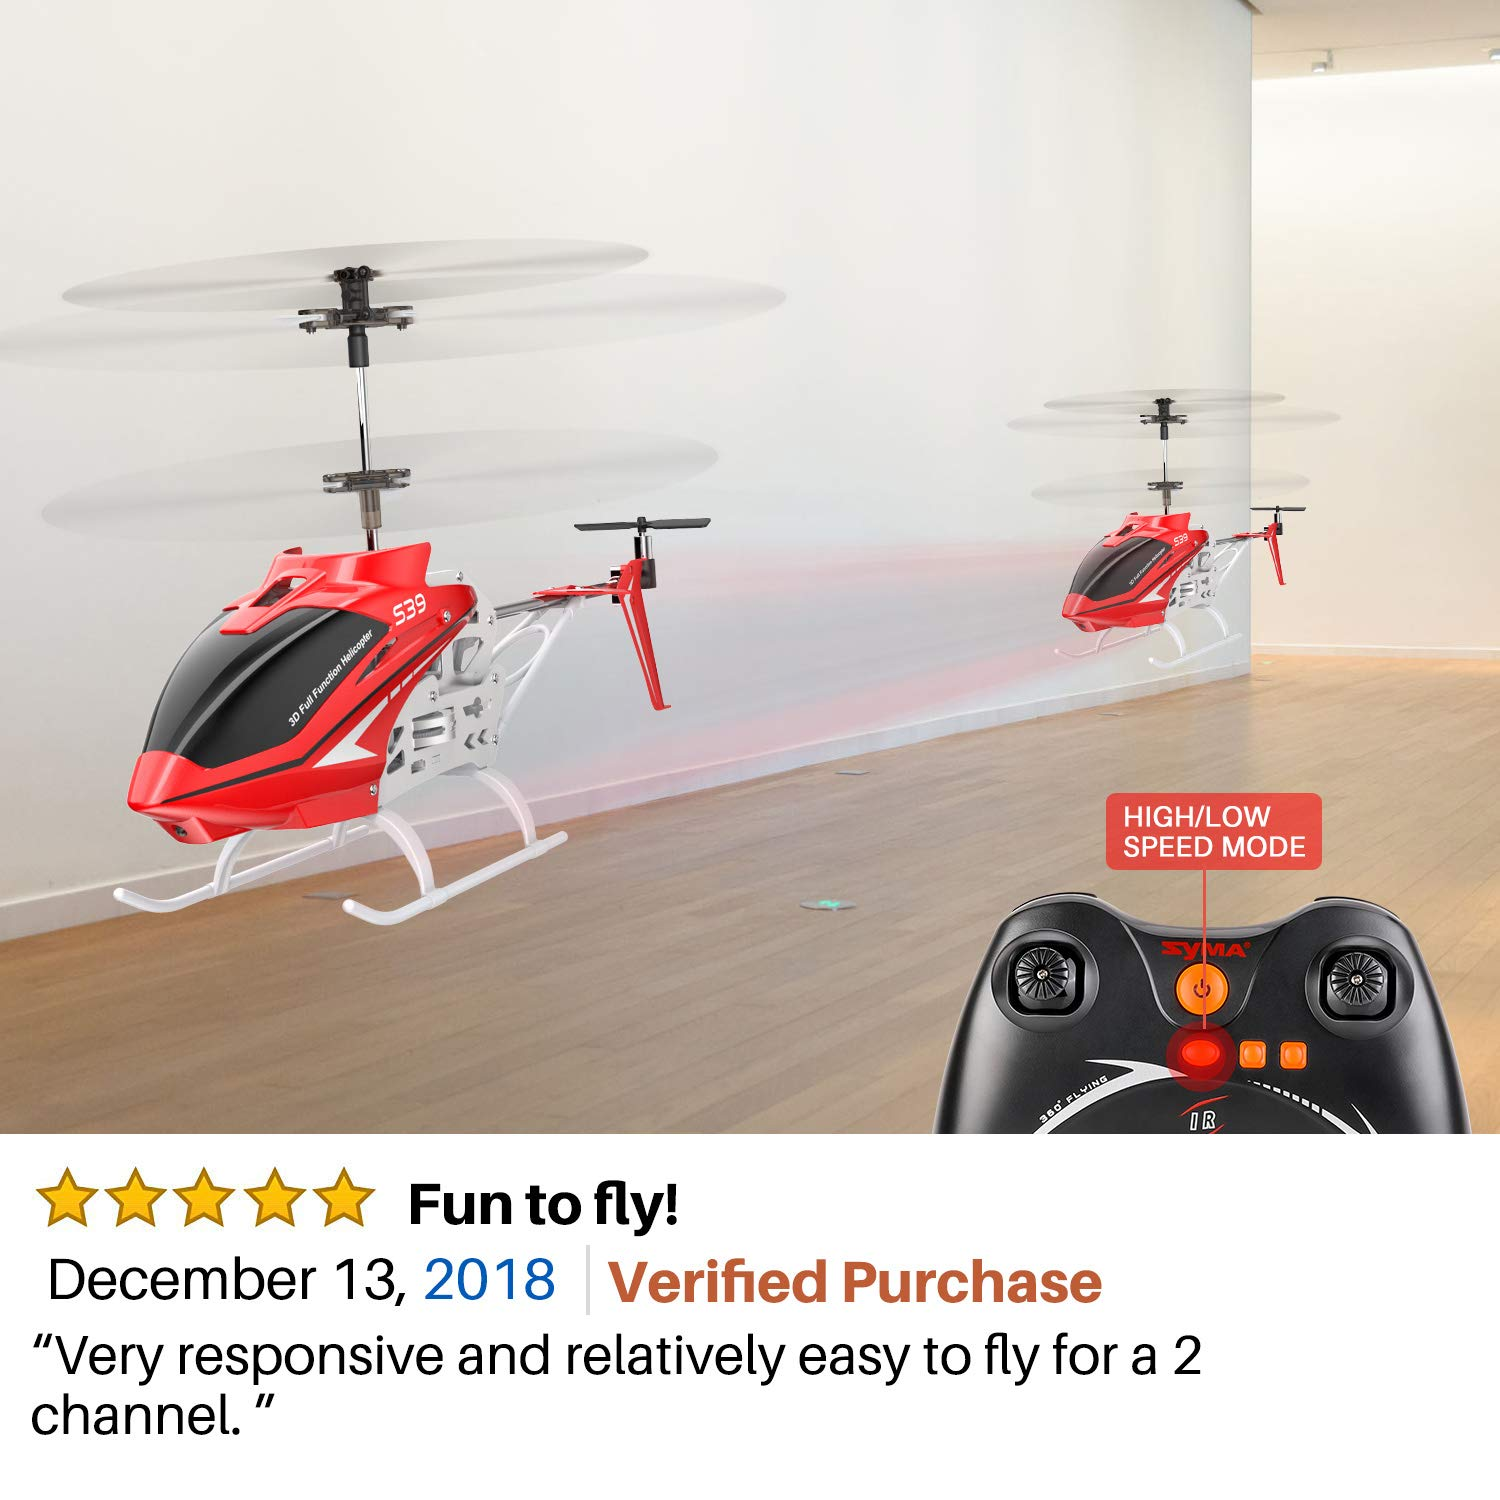 SYMA RC Helicopter, S39 Aircraft with 3.5 Channel,Bigger Size, Sturdy Alloy Material, Gyro Stabilizer and High &Low Speed, Multi-Protection Drone for Kids and Beginners to Play Indoor-Red by SYMA (Image #6)